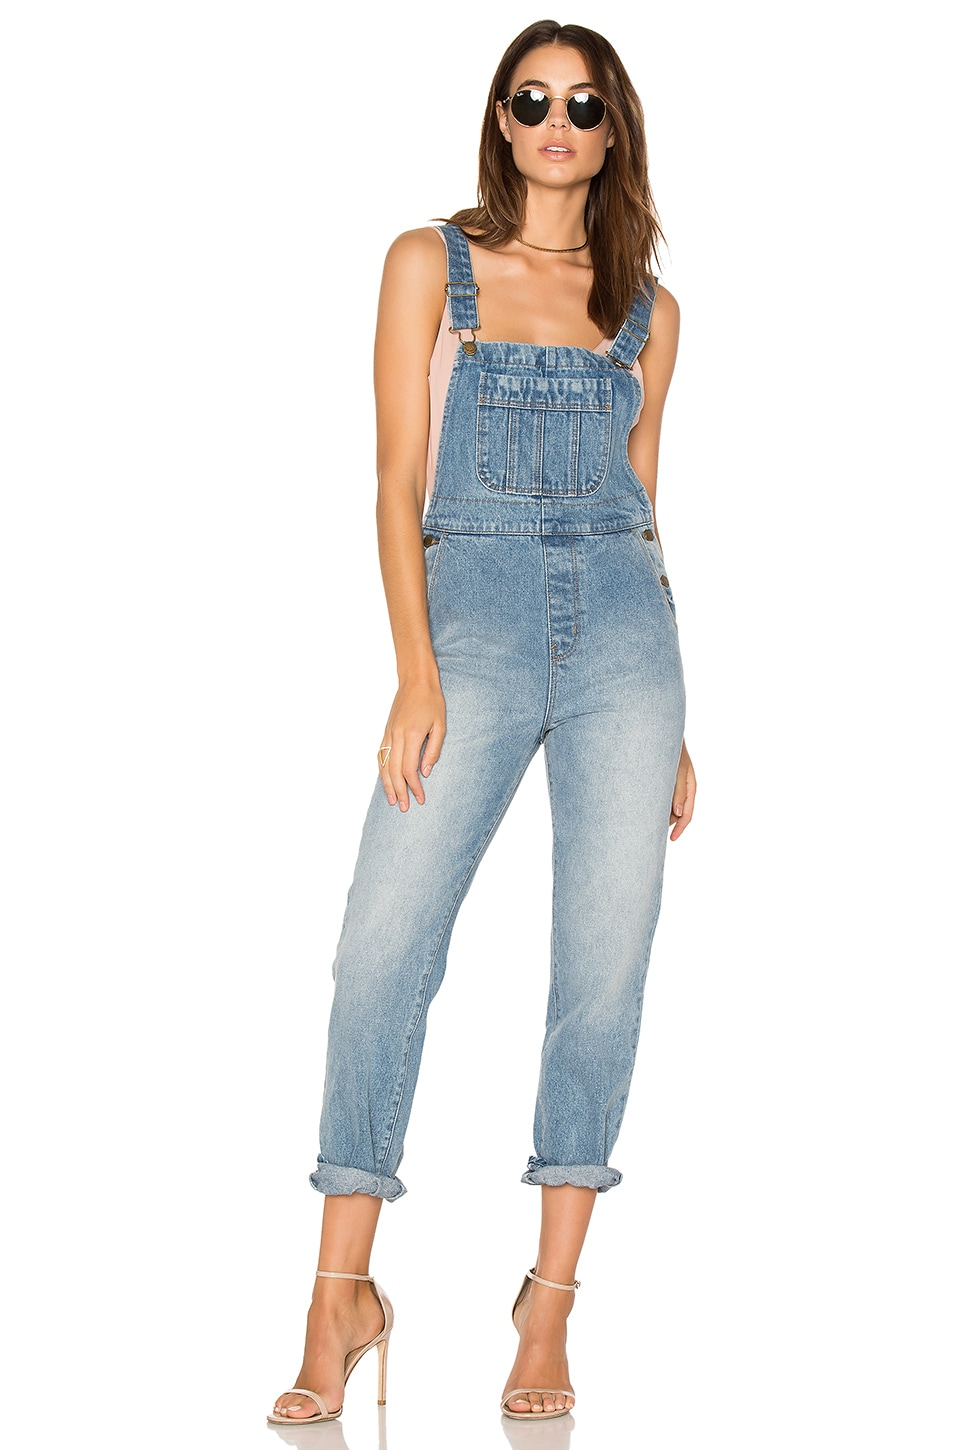 ROLLA'S Utility Overalls in Trade Blue